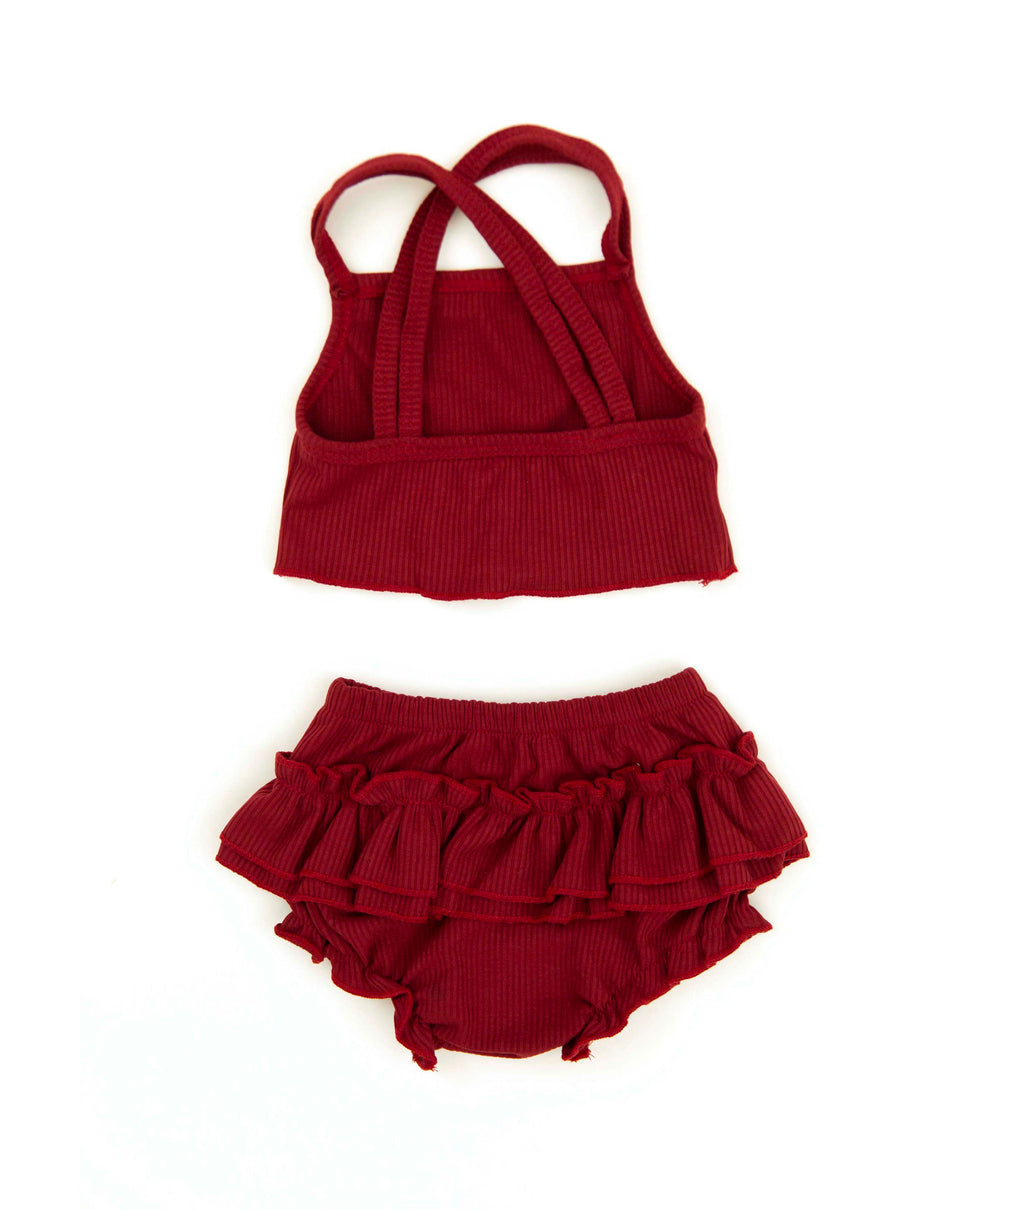 Juliana Outfit in Maroon Red - Reverie Threads